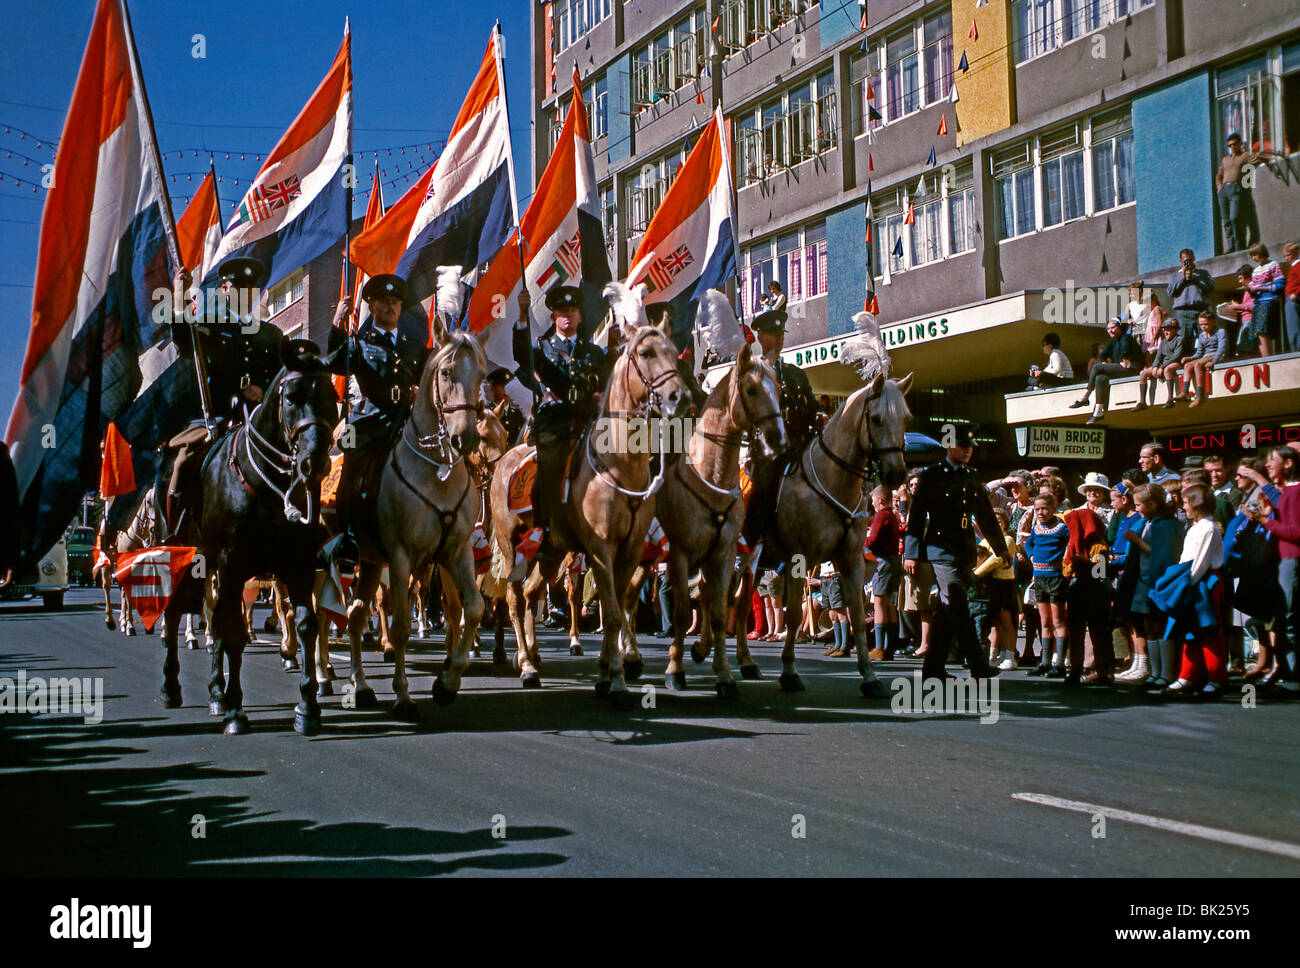 Parade with mounted policemen on horseback carrying the national flag during the apartheid era, Durban, South Africa, - Stock Image